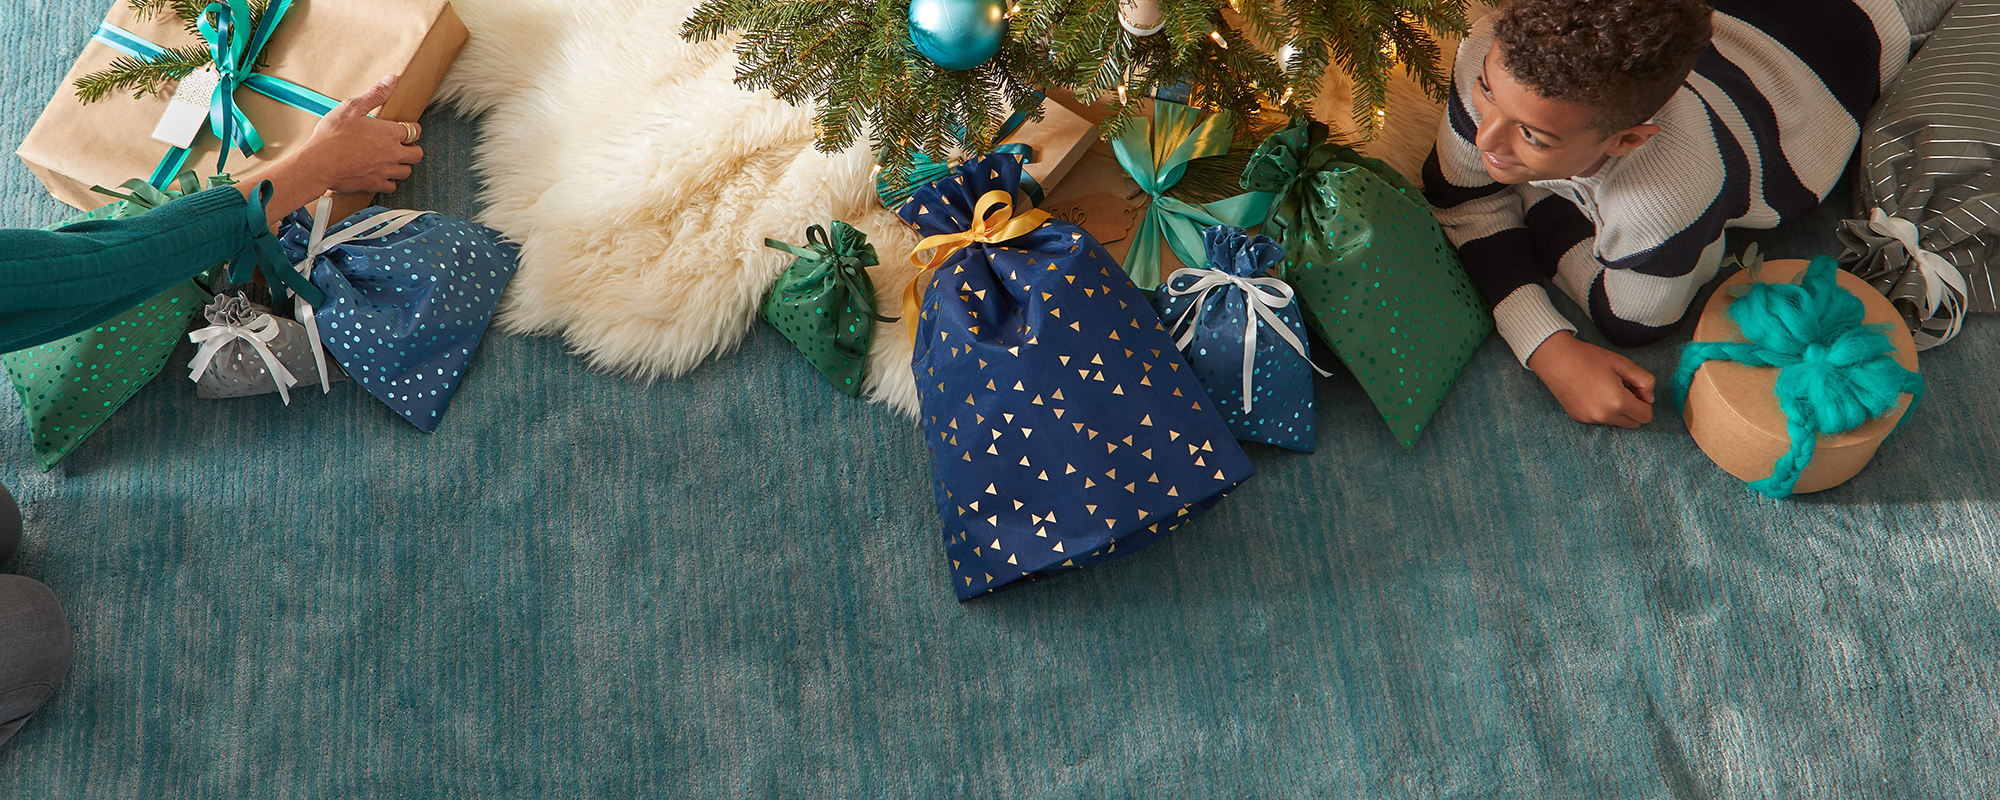 Making Holiday Gifting Easier Than Ever